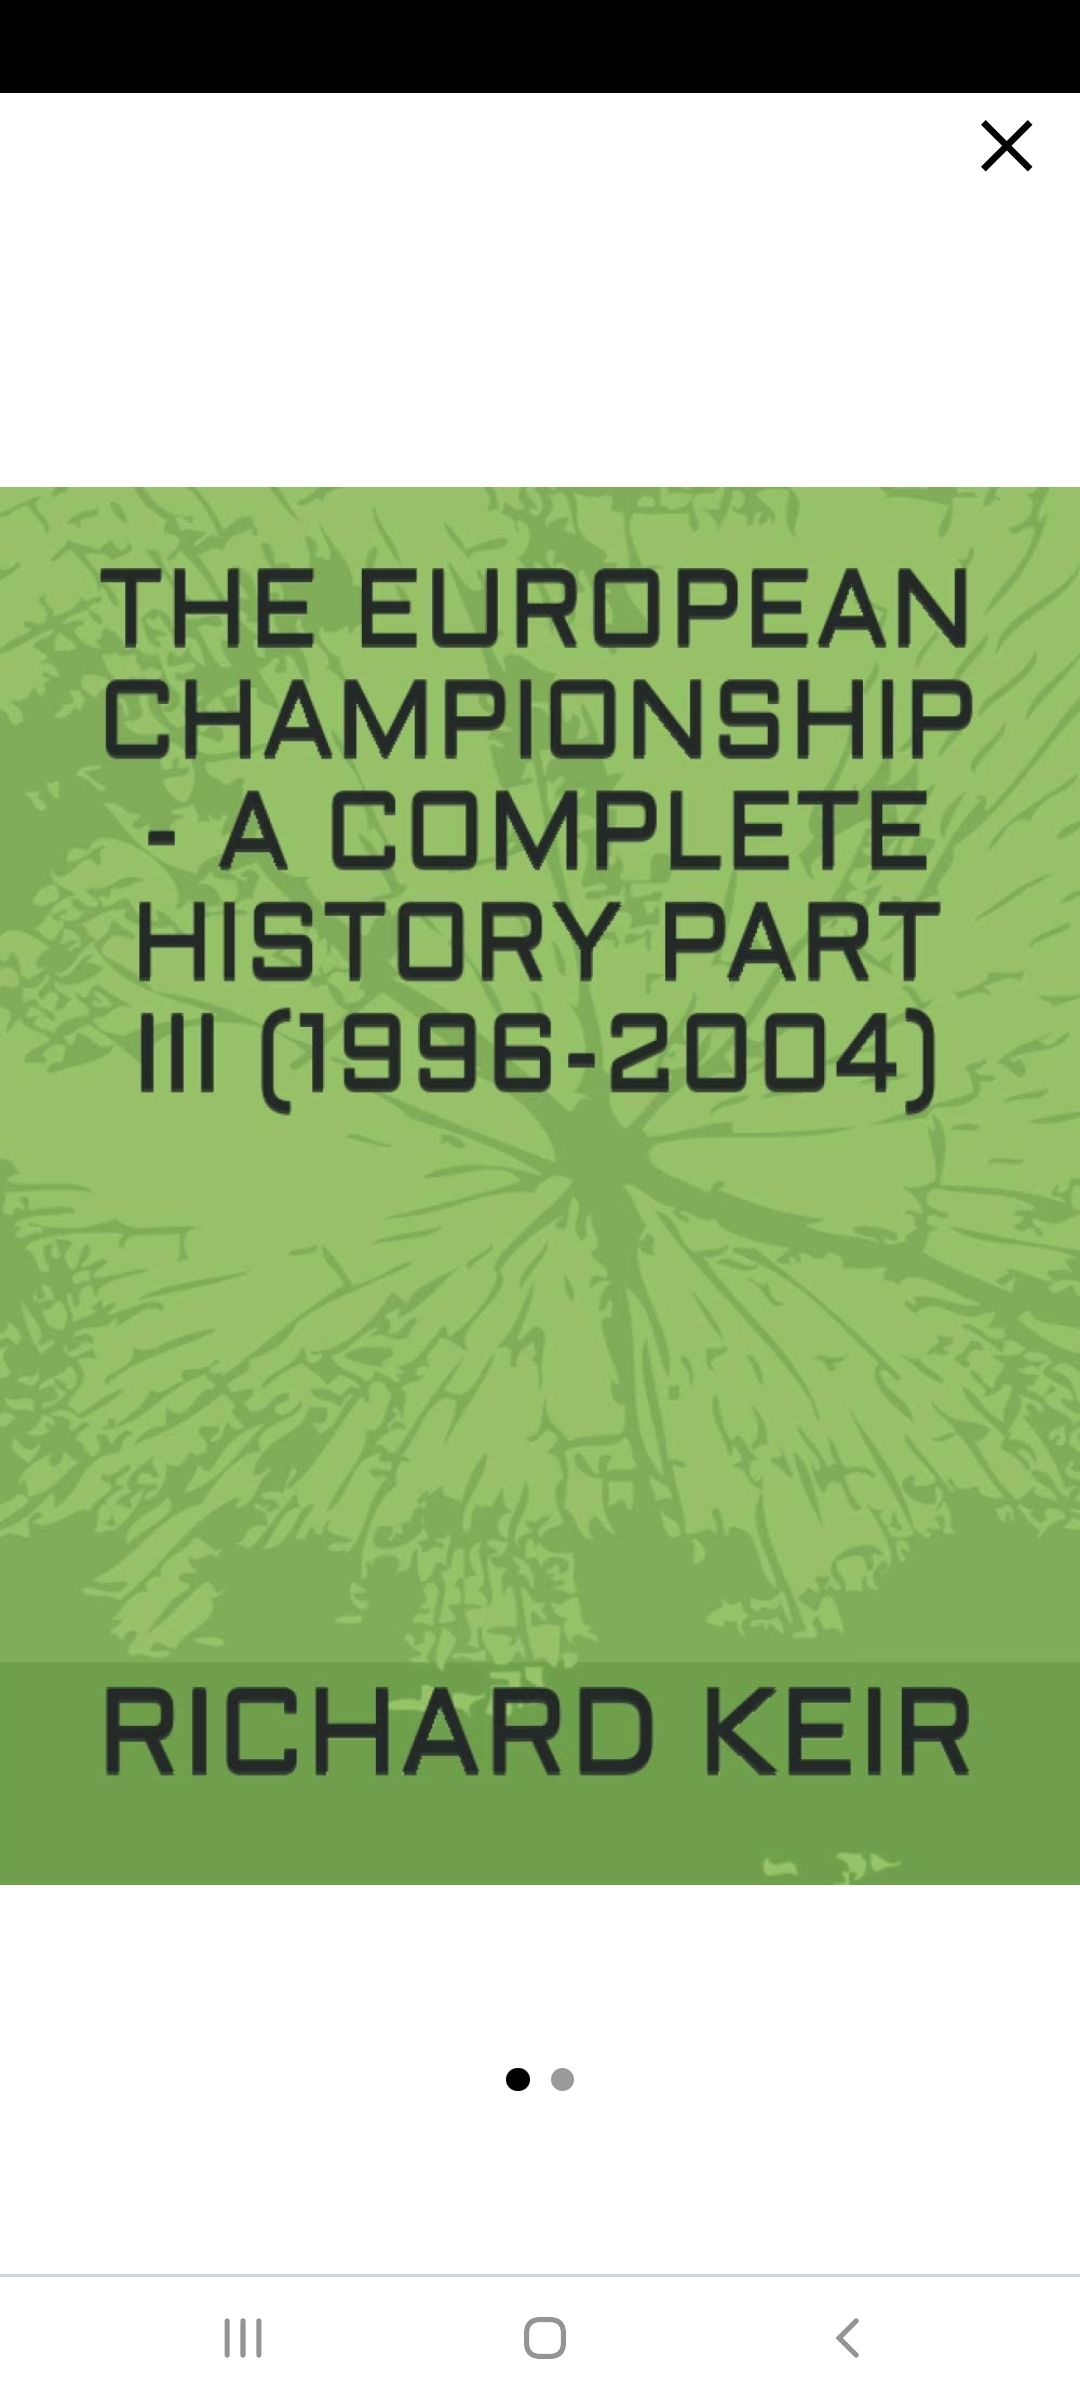 THE EUROPEAN CHAMPIONSHIP A COMPLETE HISTORY PART 3 (1996-2004)'s Book Image